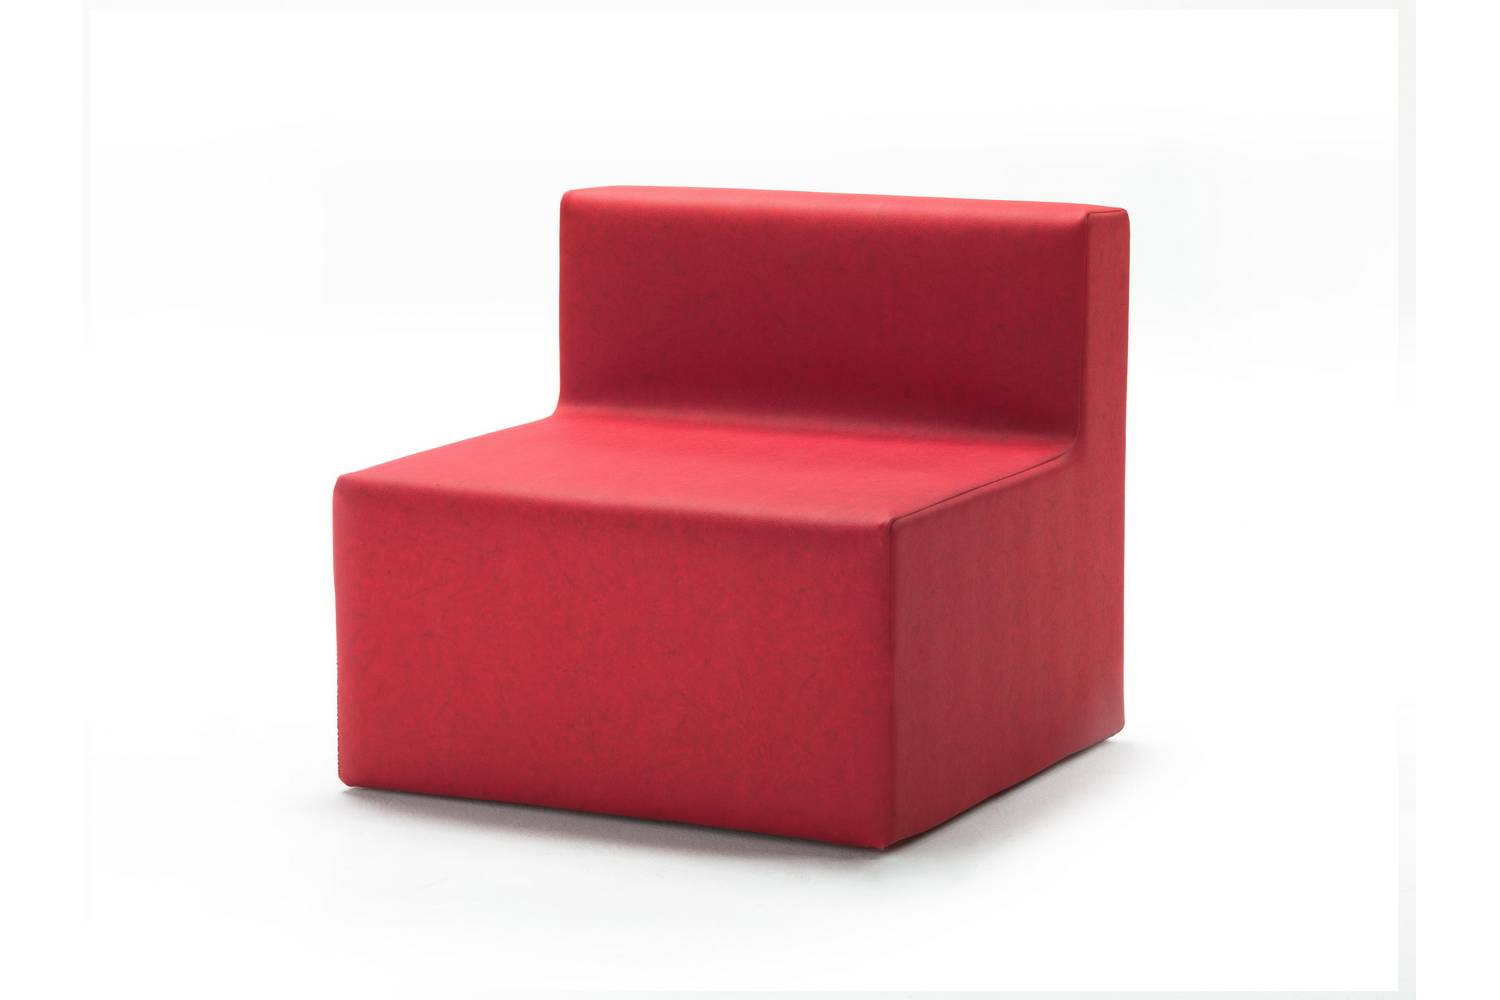 Divani Definition Cabrio Armchair By Piero Lissoni For Living Divani Space Furniture